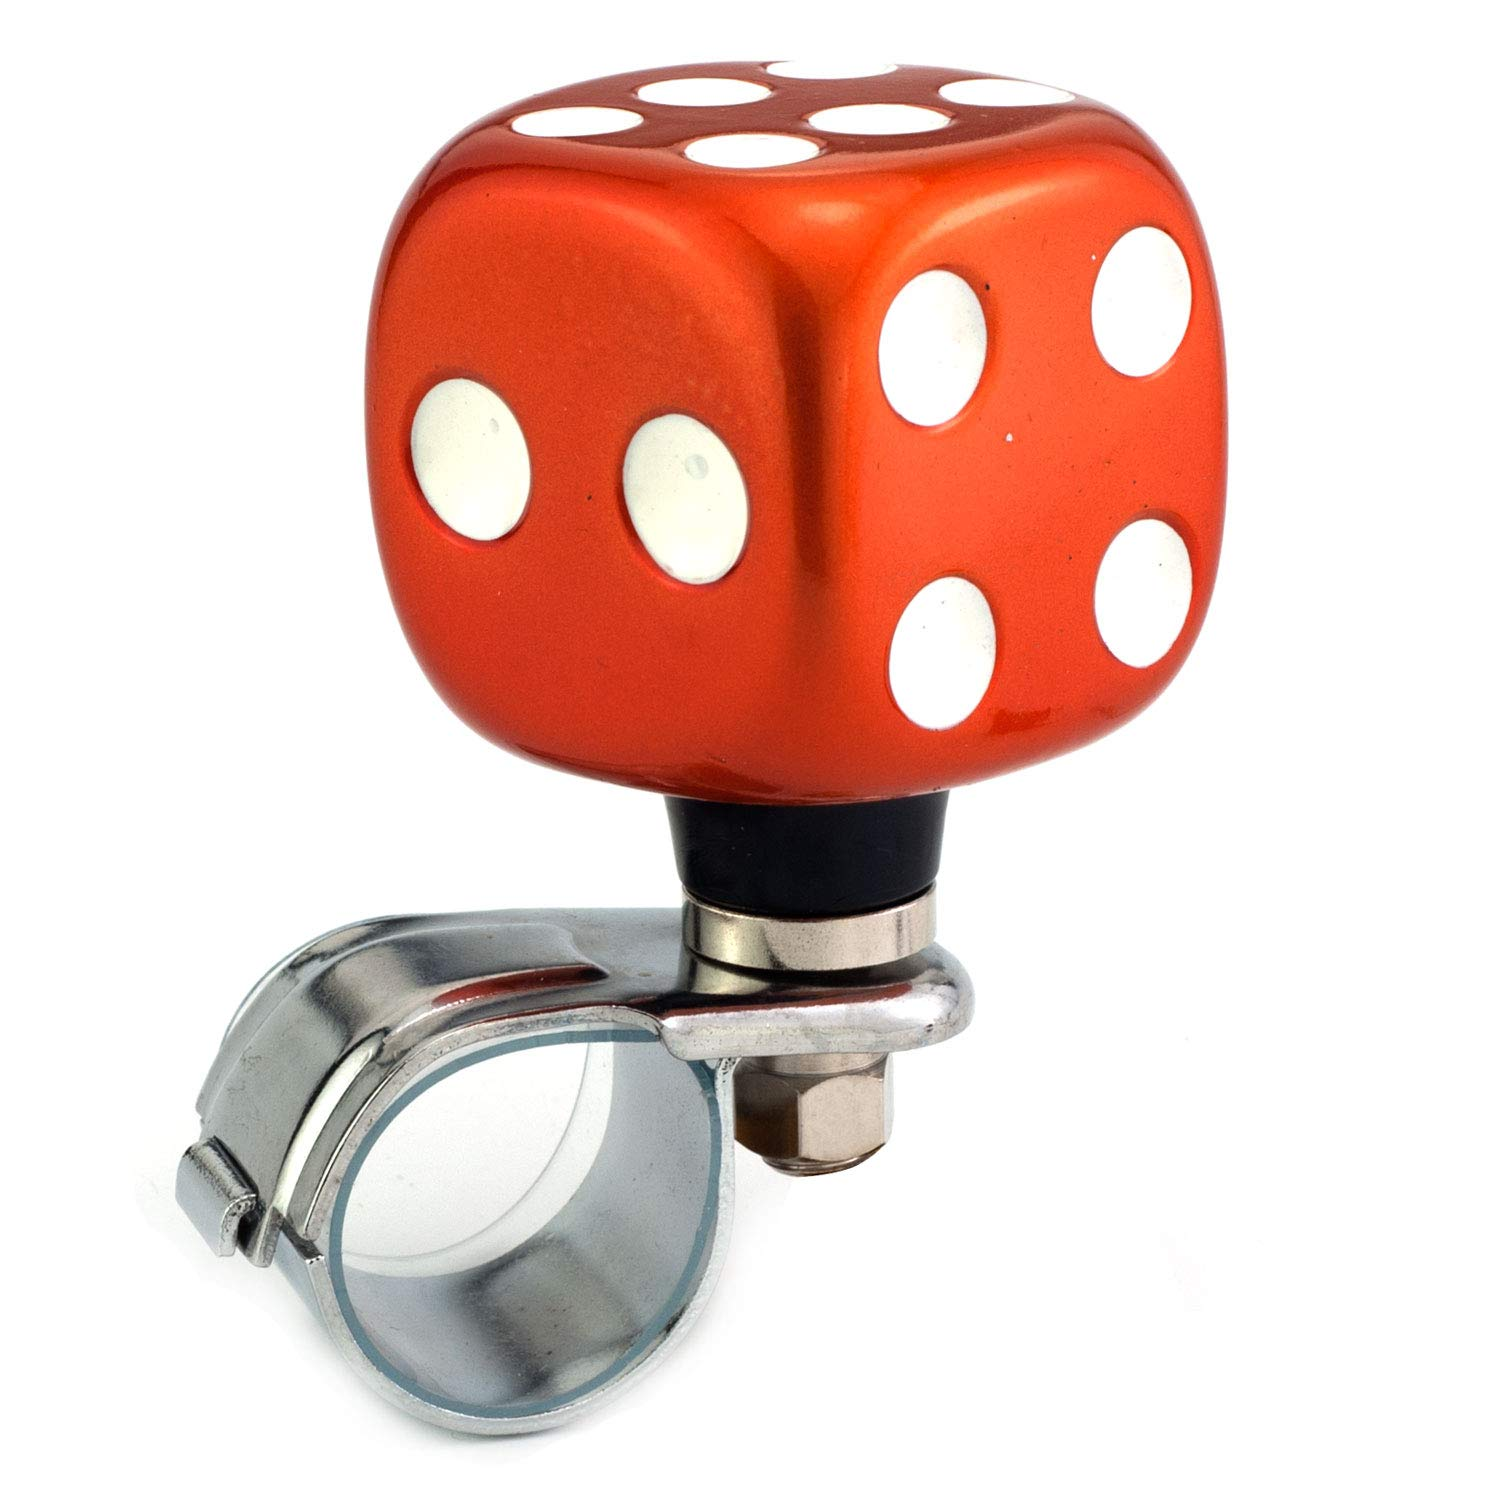 Thruifo Steering Wheel Knob Suicide Spinner Orange Dice Shape Car Power Handle Grip Knobs Fit Most Manual Automatic Vehicles